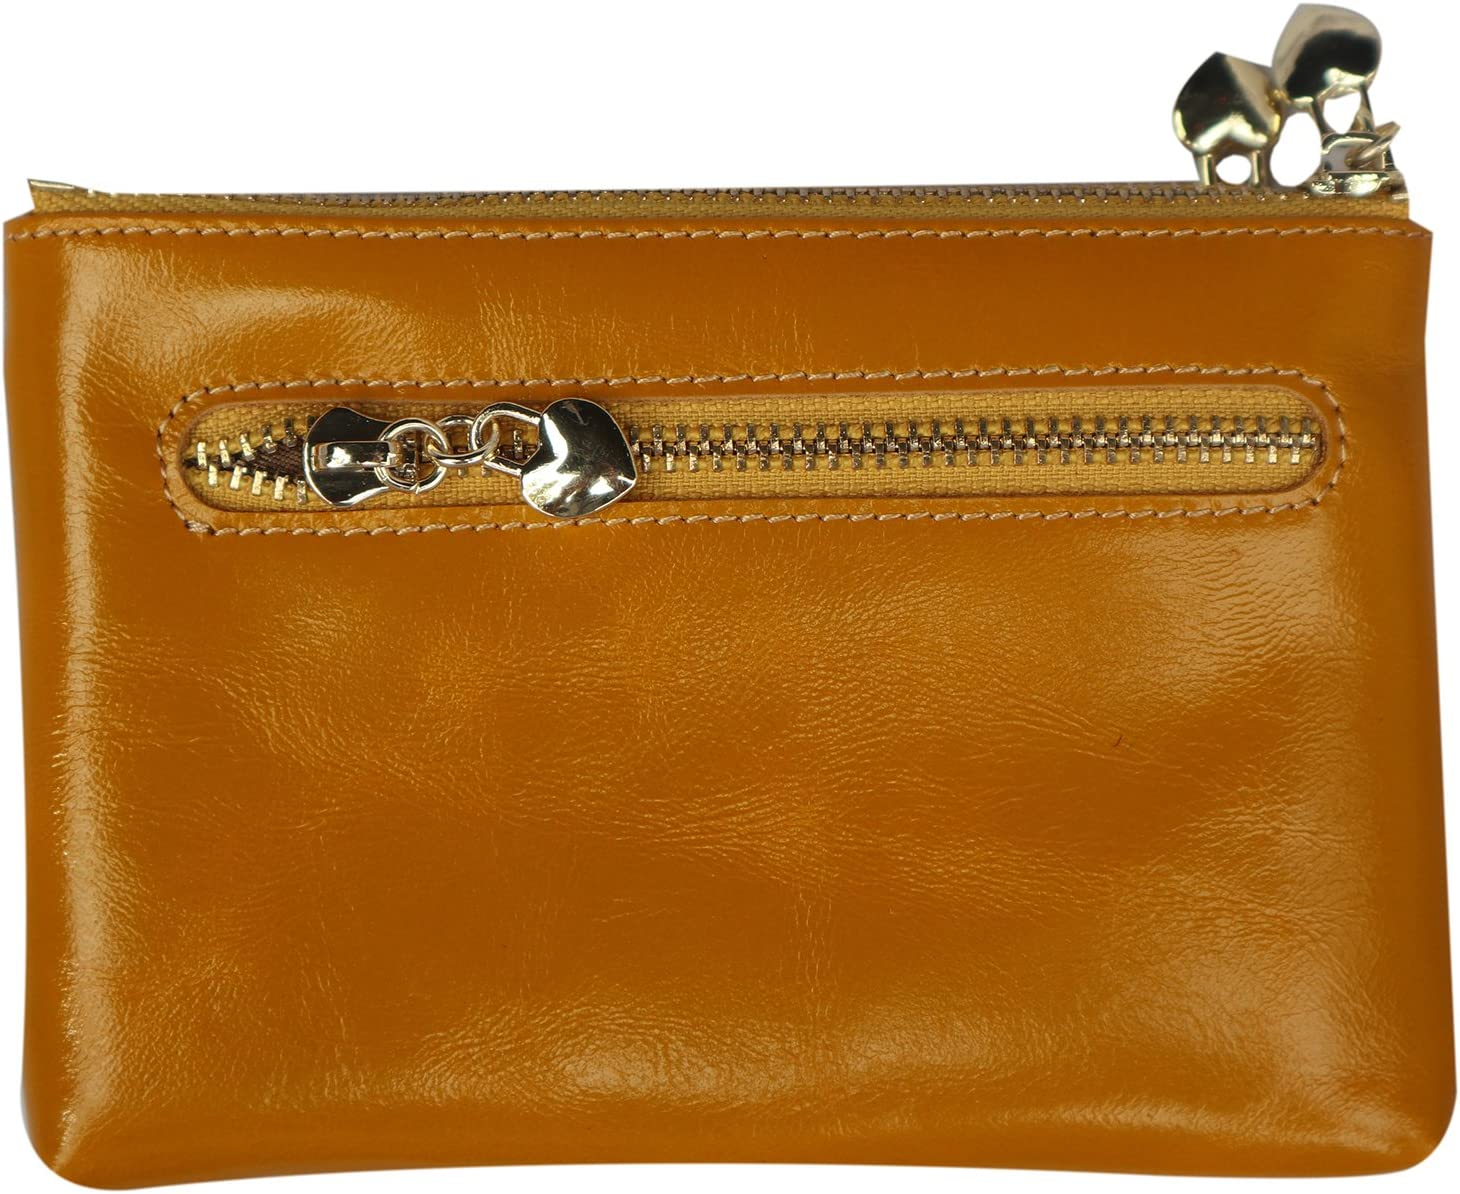 Daimanbo Women Imported Soft Real Leather Clutch Bag Yellow